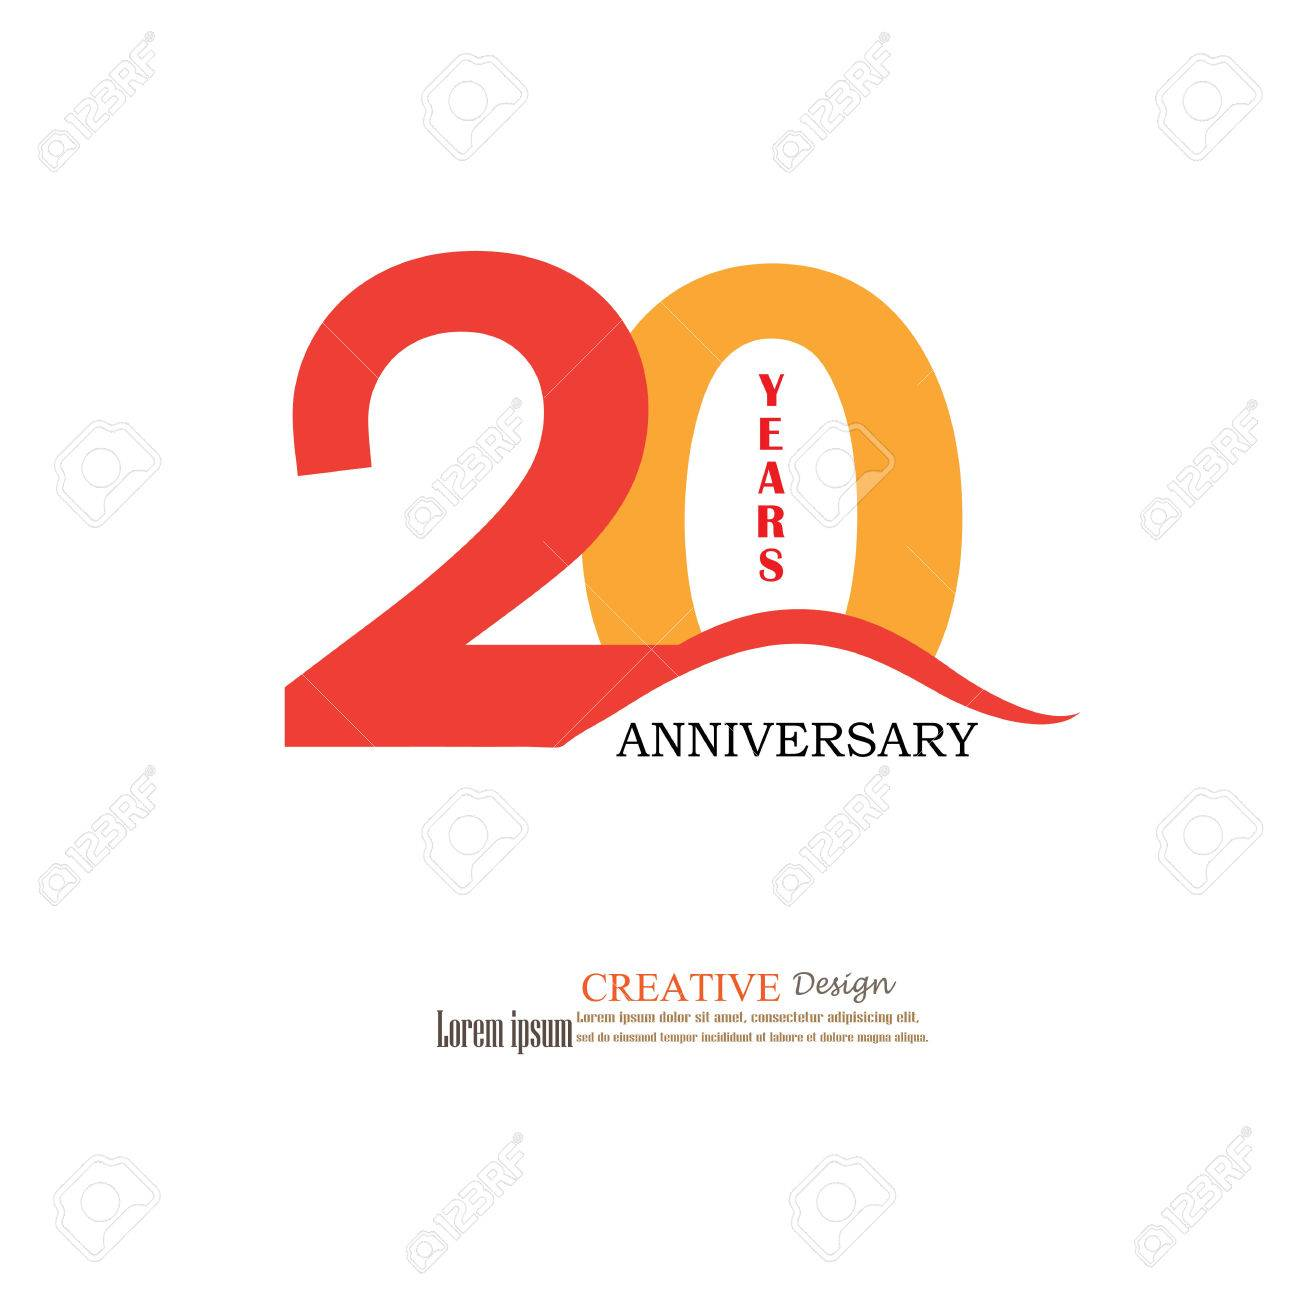 Template logo 20th anniversary 20 years anniversary logo template logo 20th anniversary 20 years anniversary logo celebration 20 years 20 altavistaventures Image collections